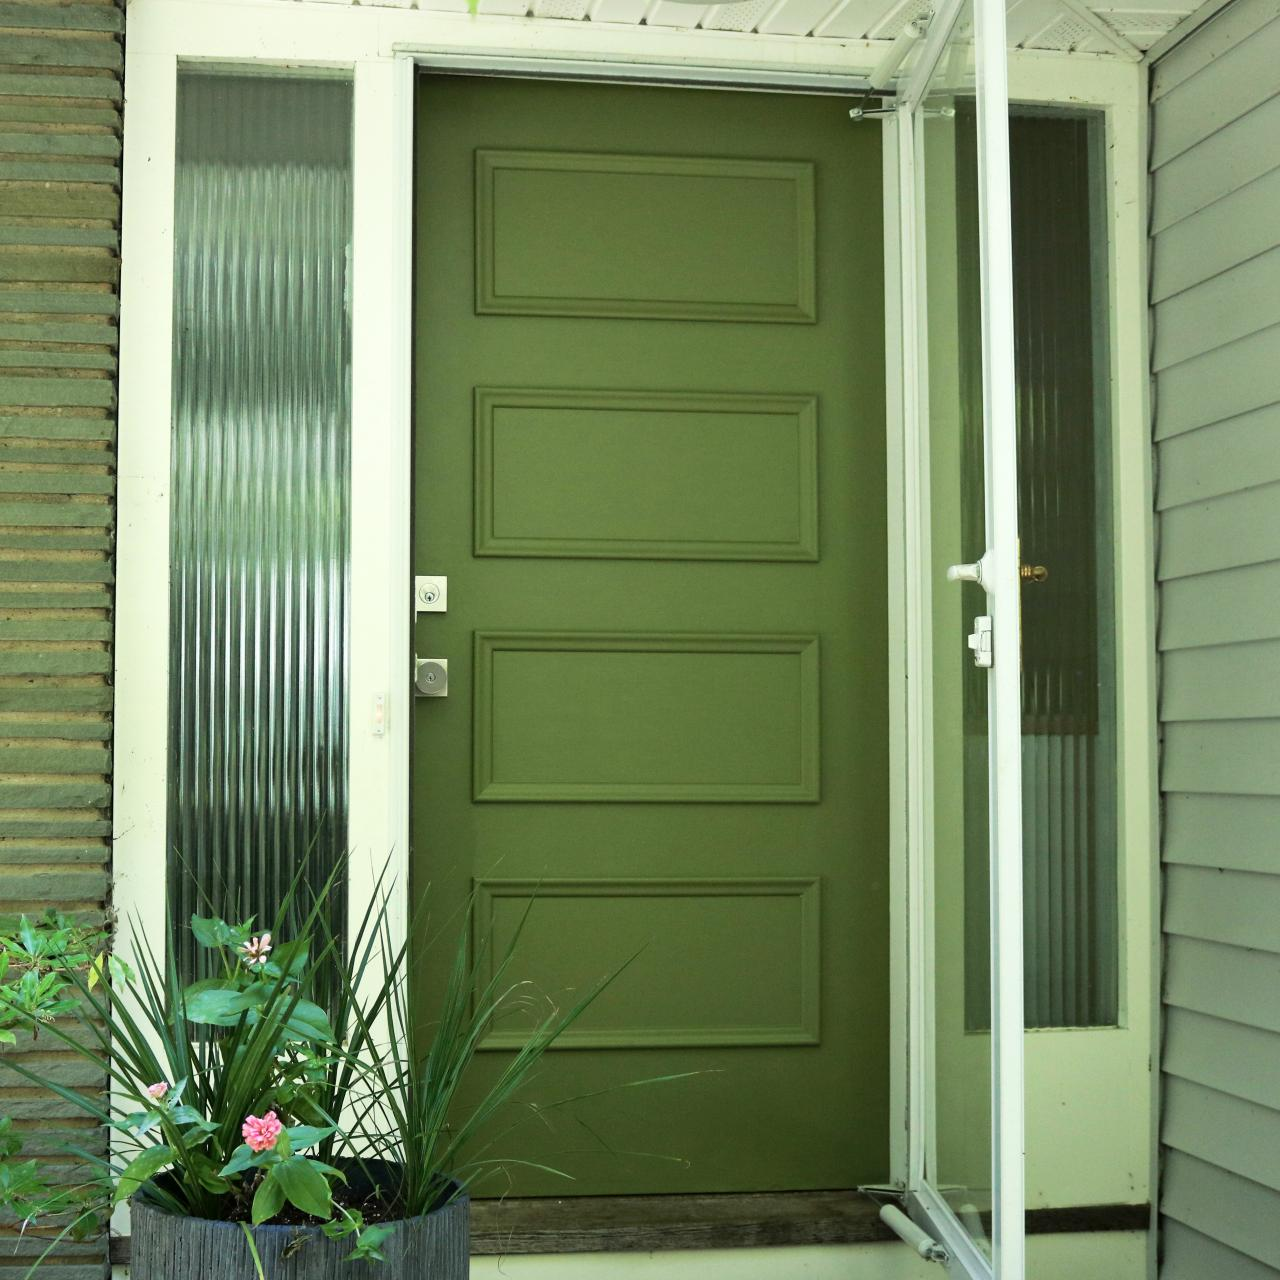 Learn how to paint your front door how tos diy introduction rubansaba